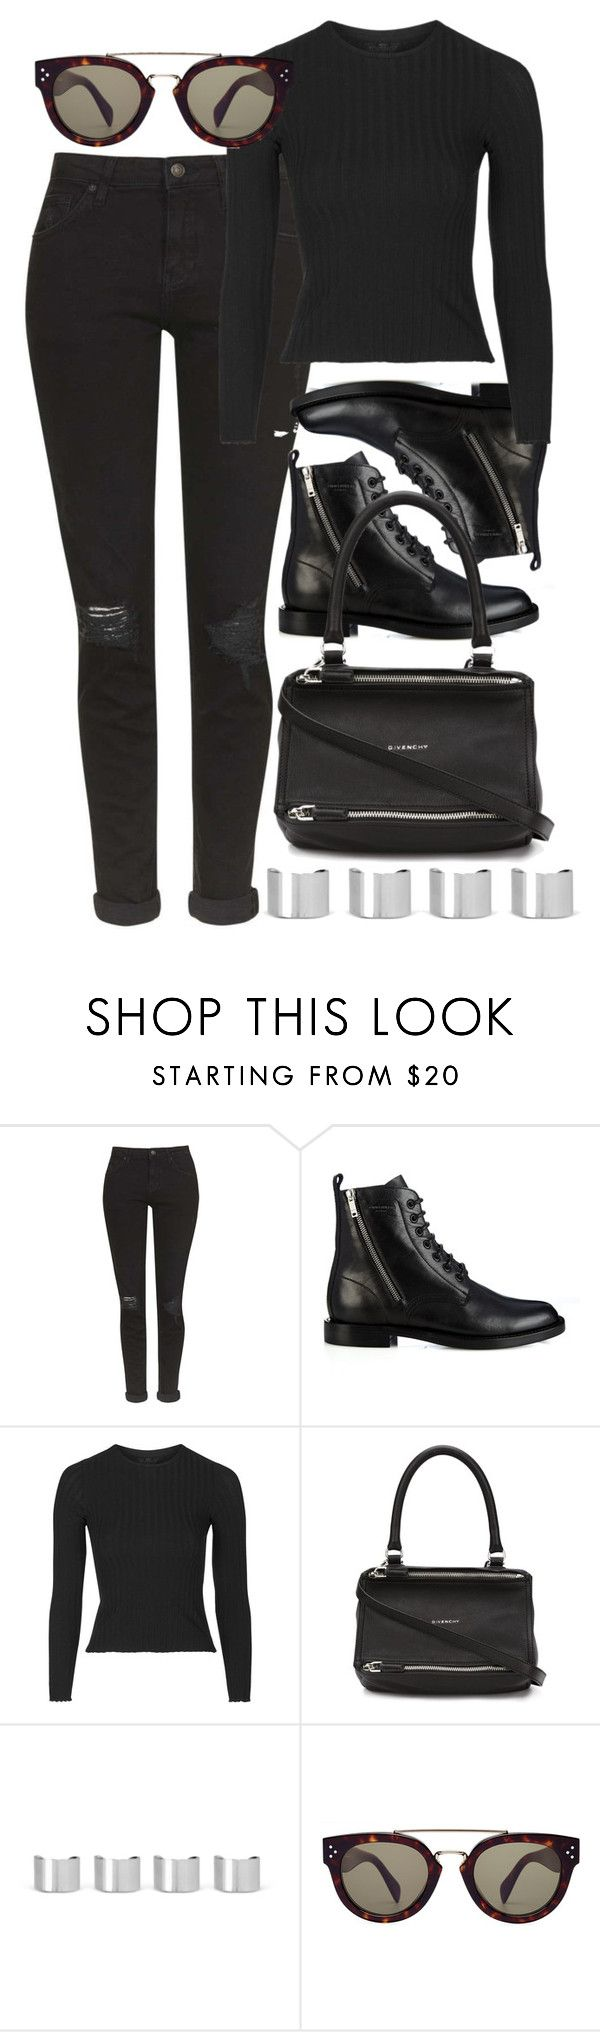 """Untitled #4722"" by style-by-rachel ❤ liked on Polyvore featuring Topshop, Yves Saint Laurent, Givenchy, Maison Margiela and CÉLINE"